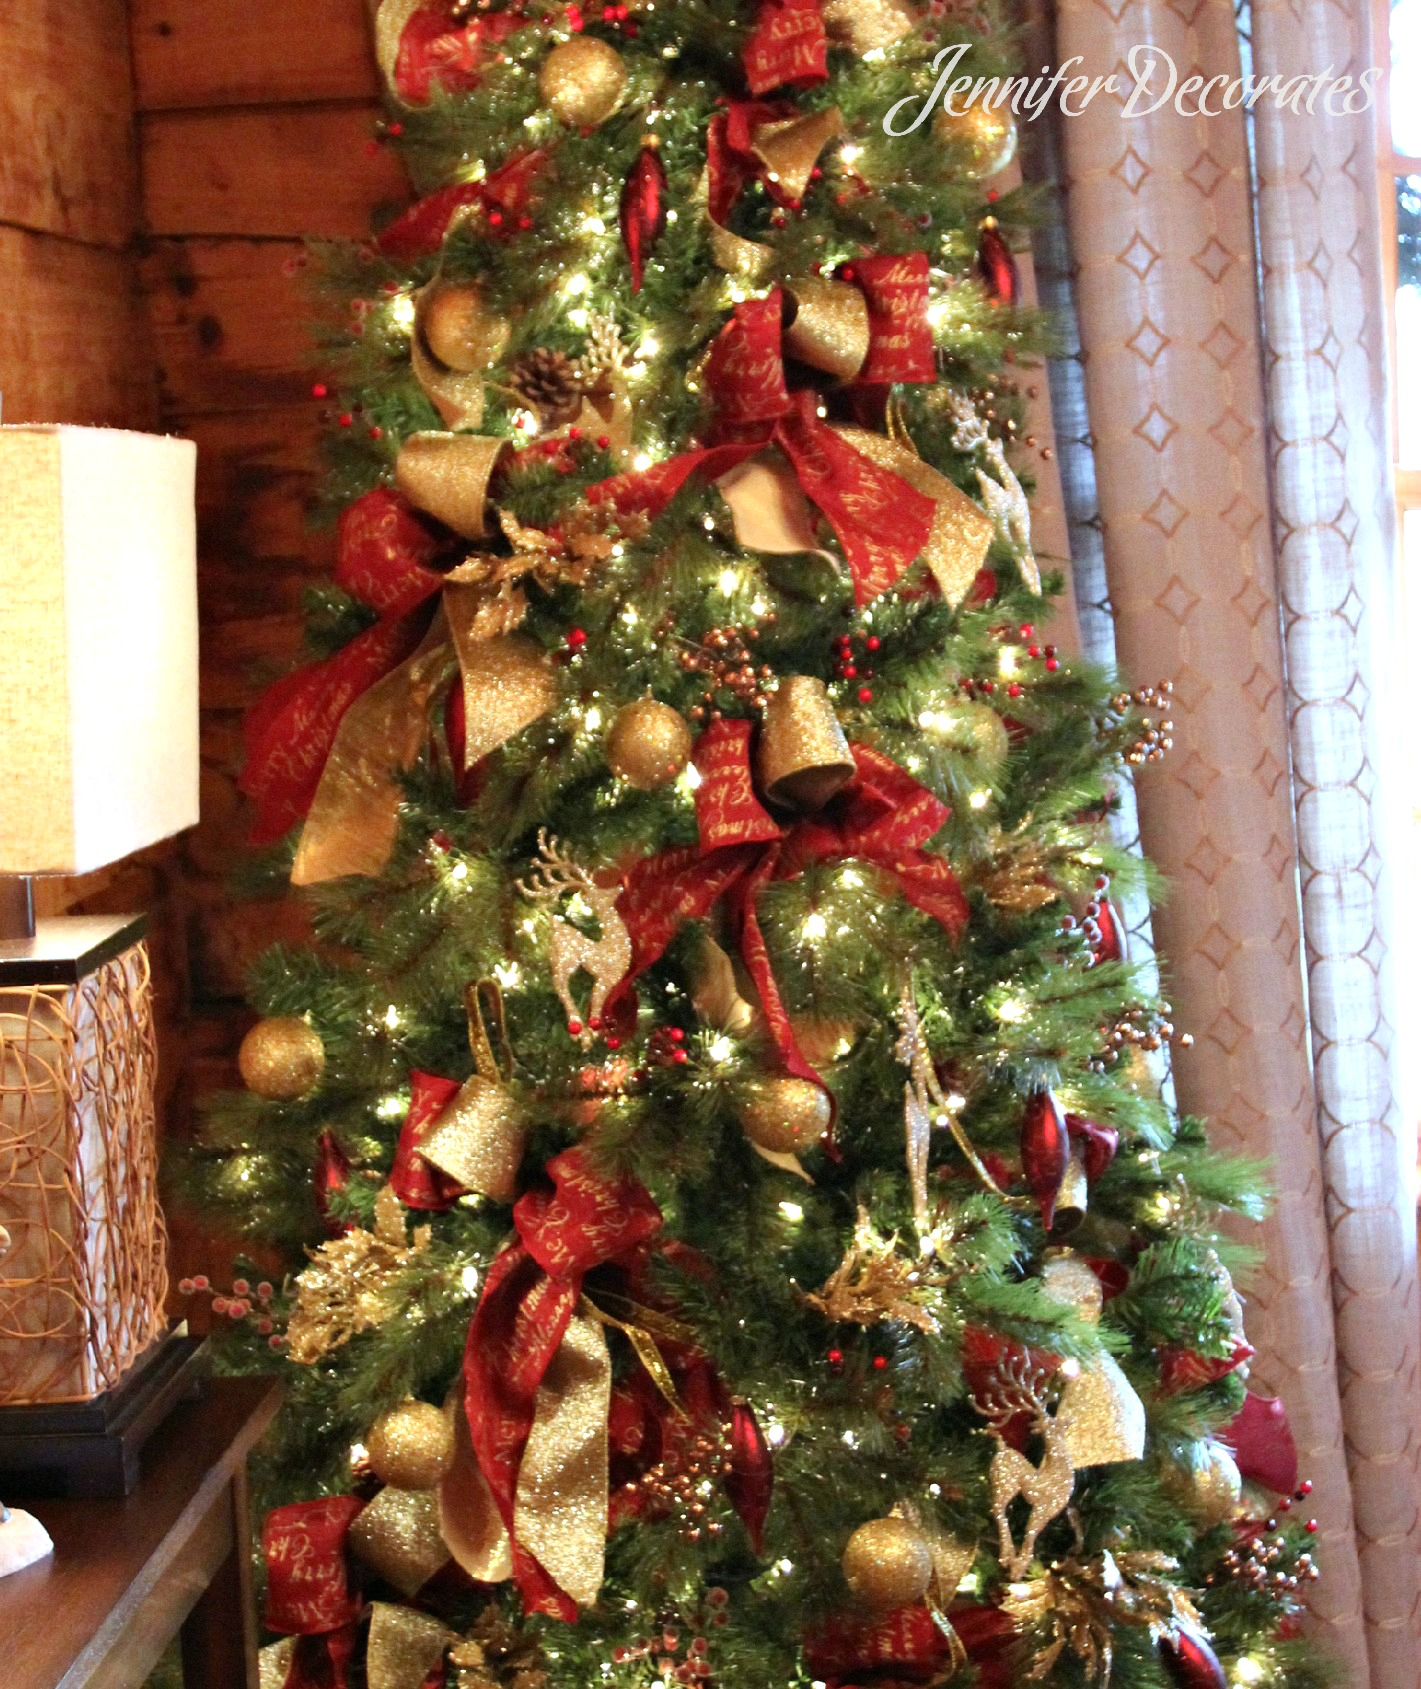 Red and gold christmas tree decorating ideas - Country Christmas Decorating Ideas From Jennifer Decorates Com